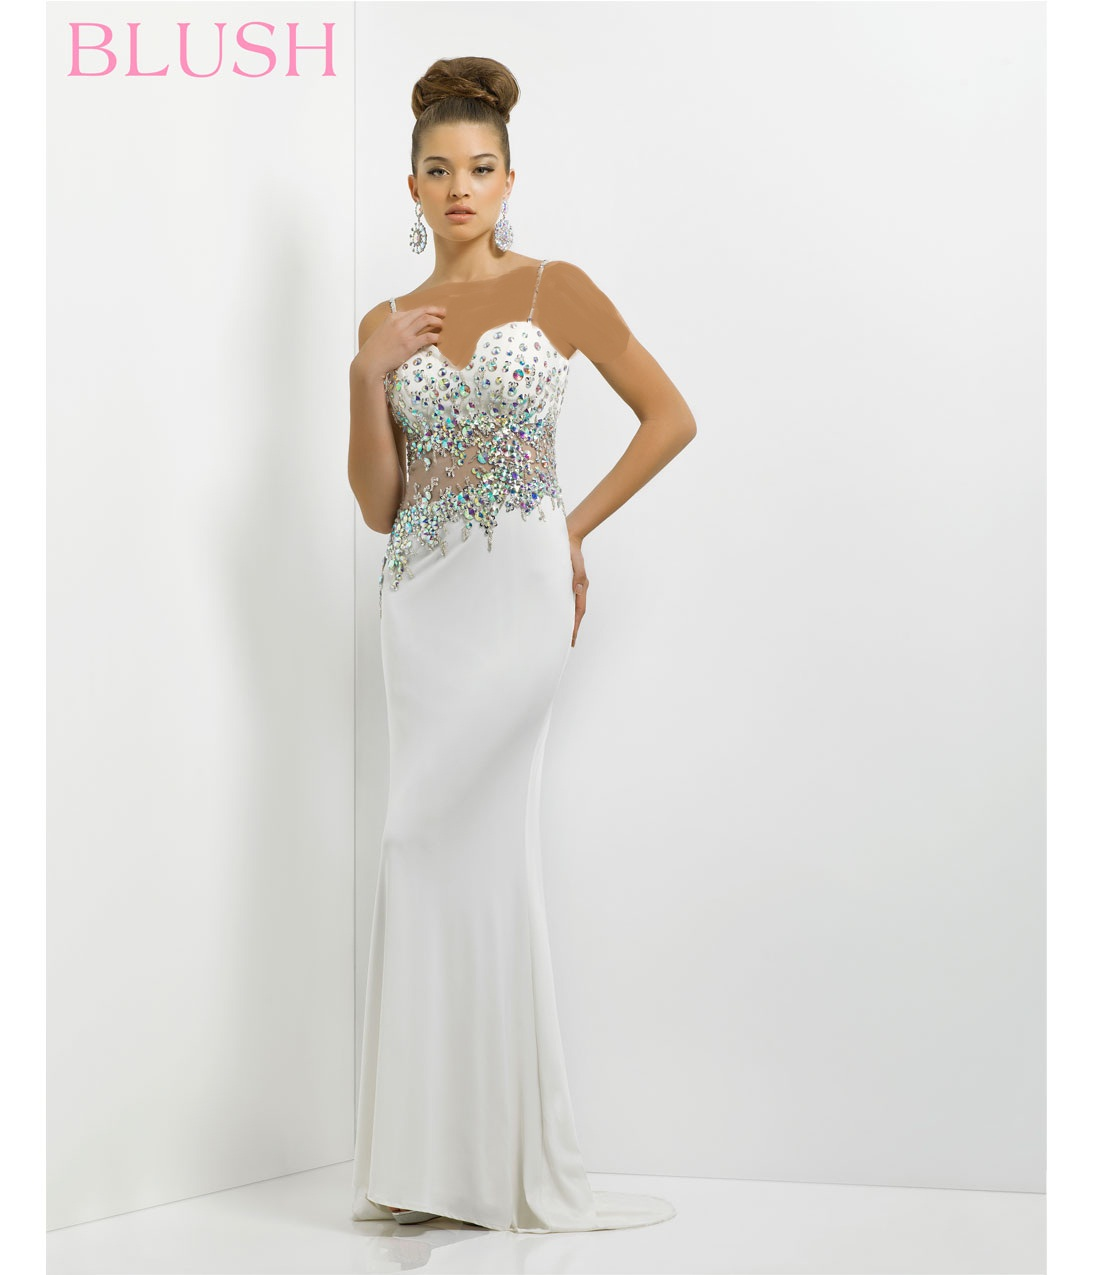 http://www.uplooder.net/img/image/49/984d70e490f875ef422df66fb81824f6/white-illusion-jeweled-prom-dress-36190-larger.jpg